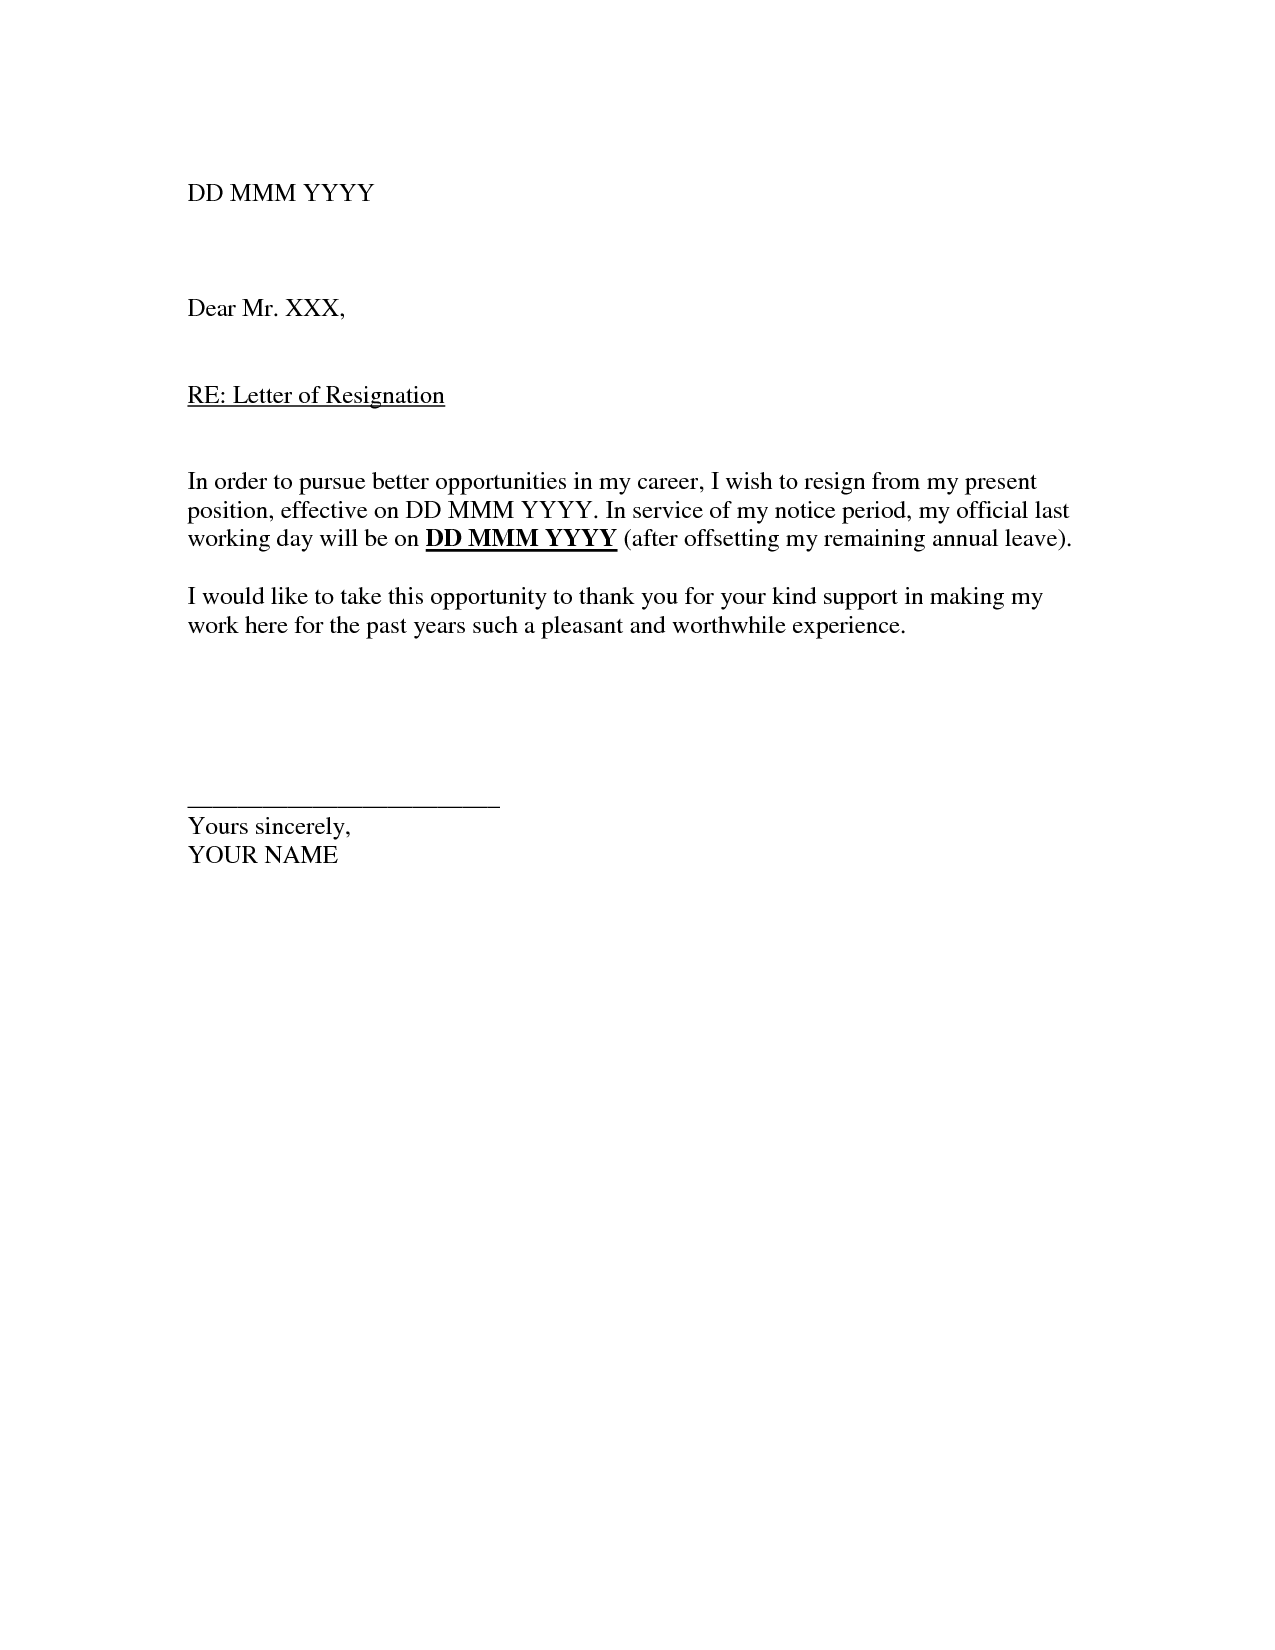 Simple Letter Of Resignation Sample Simple Resignation Letter